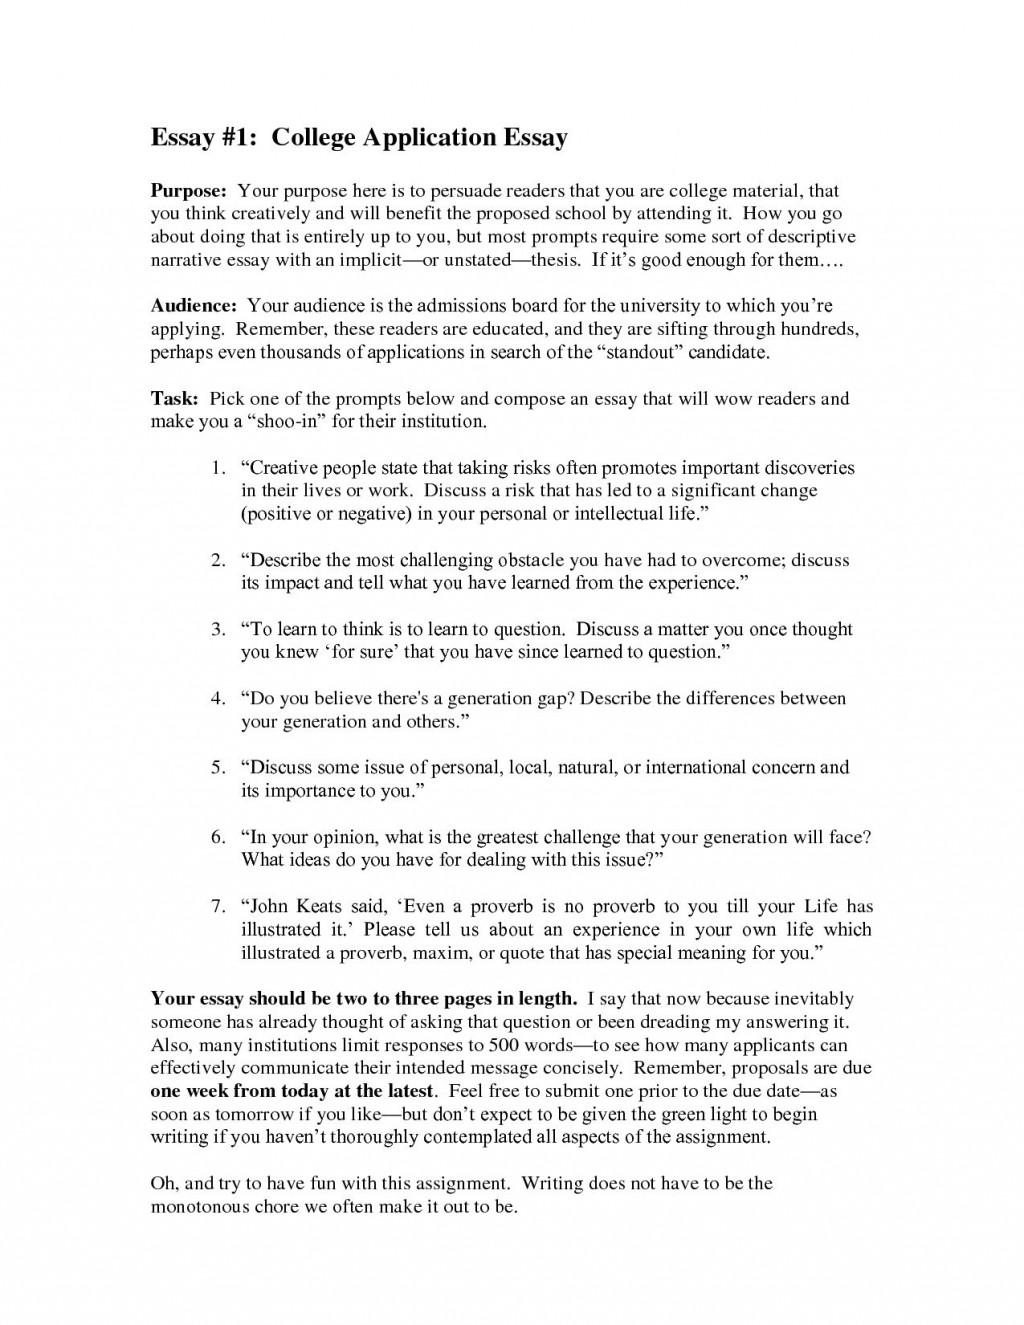 005 Topics To Do Research Paper On Dreaded A Controversial Good Write History Computer Science Large